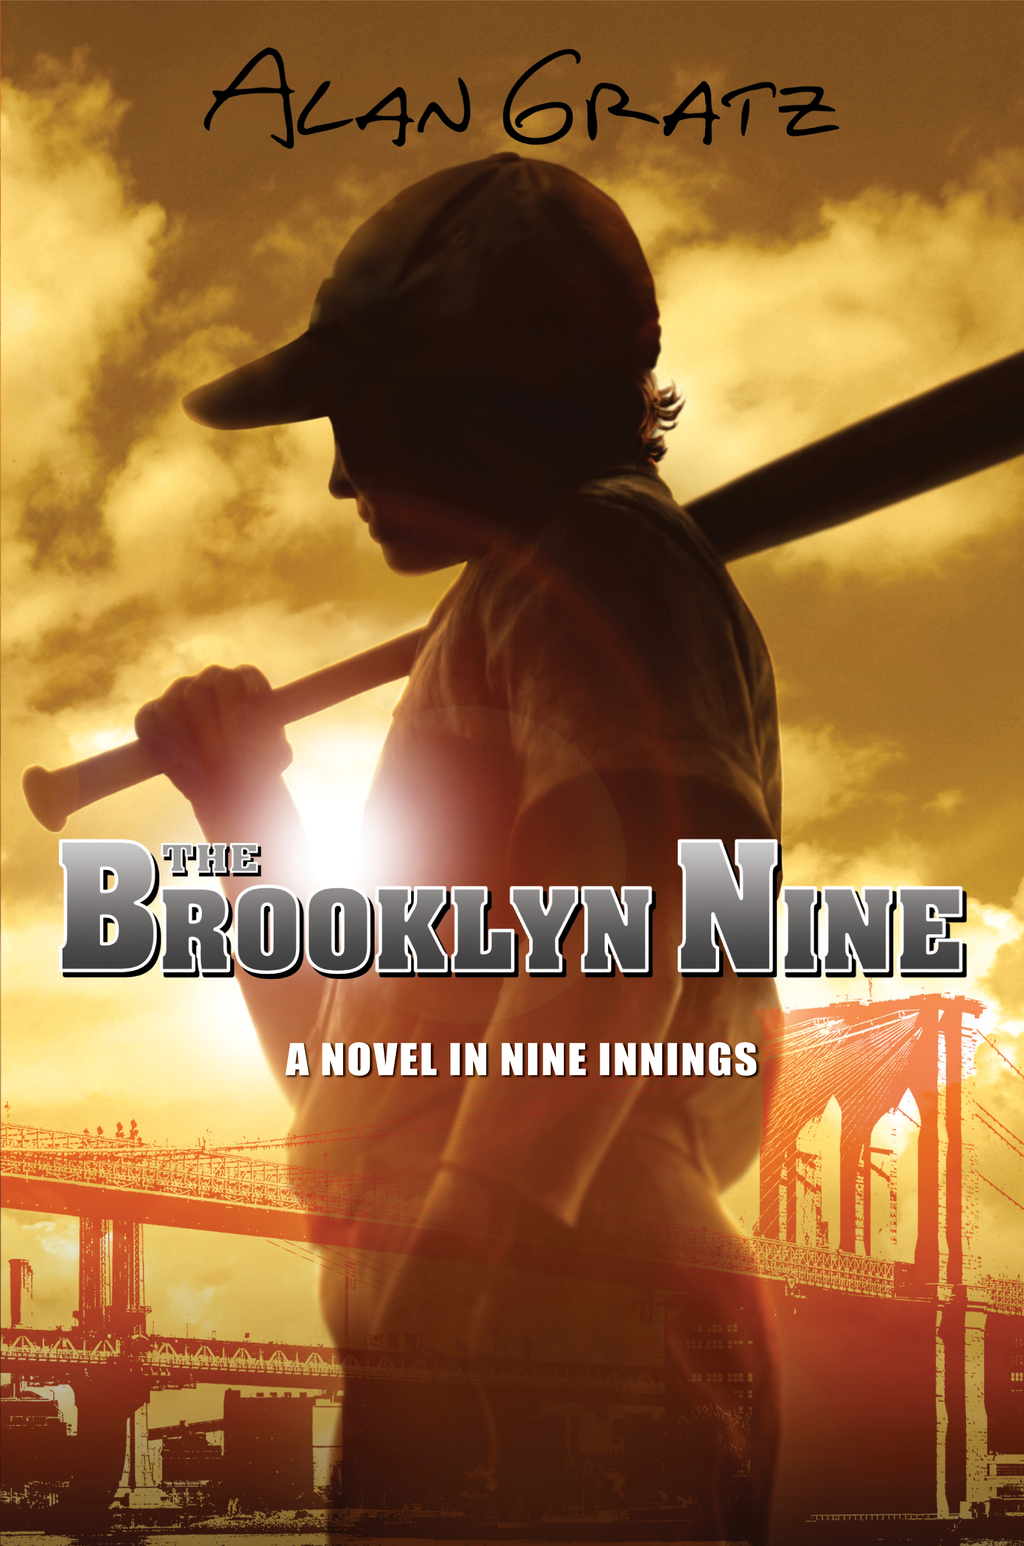 The Brooklyn Nine By: Alan M. Gratz